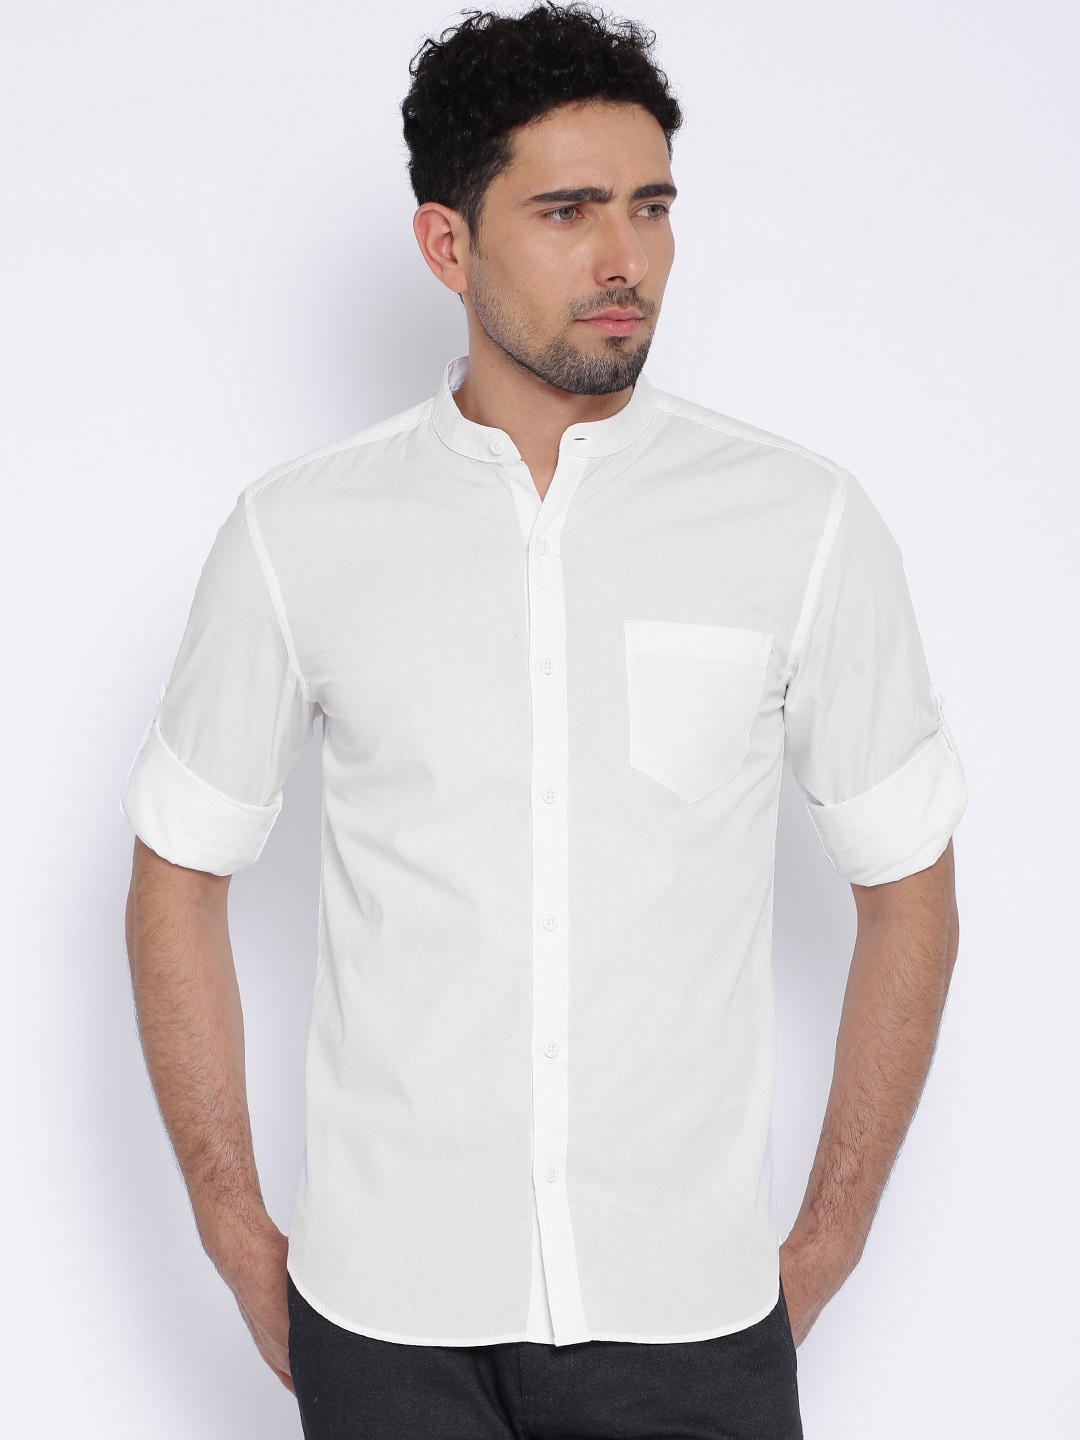 August 2016 artee shirt Buy white dress shirt